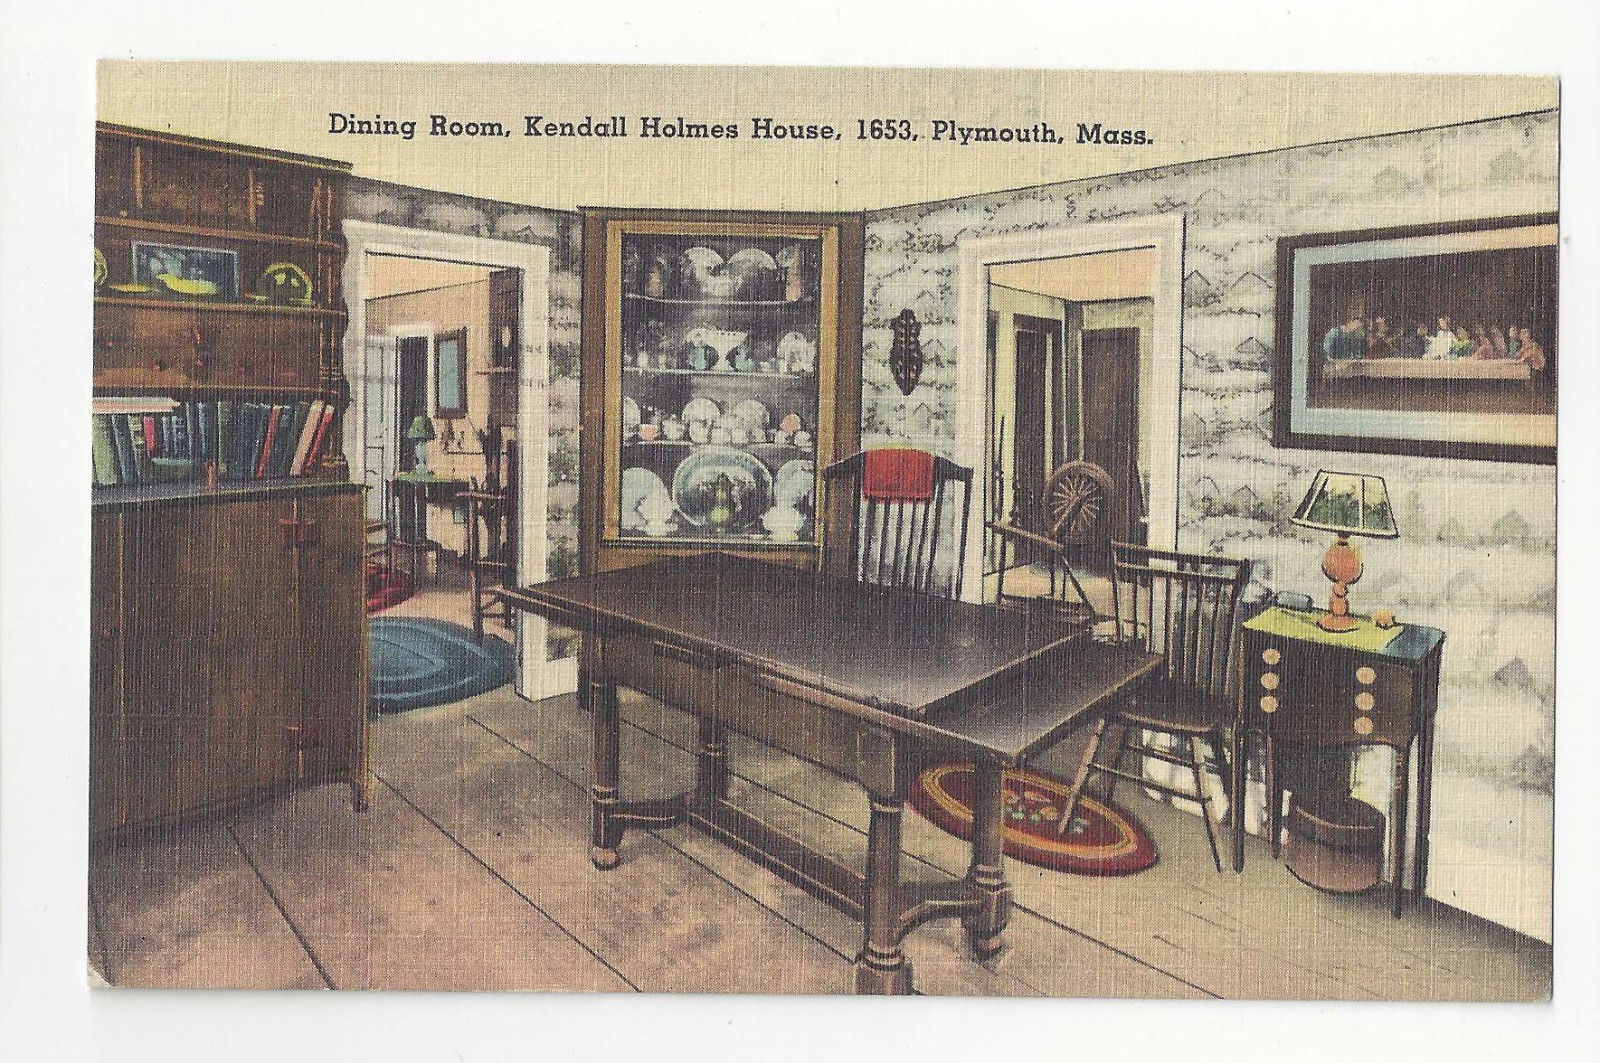 MA Plymouth Kendall Holmes House Dining Room Vtg Tichnor Linen Postcard